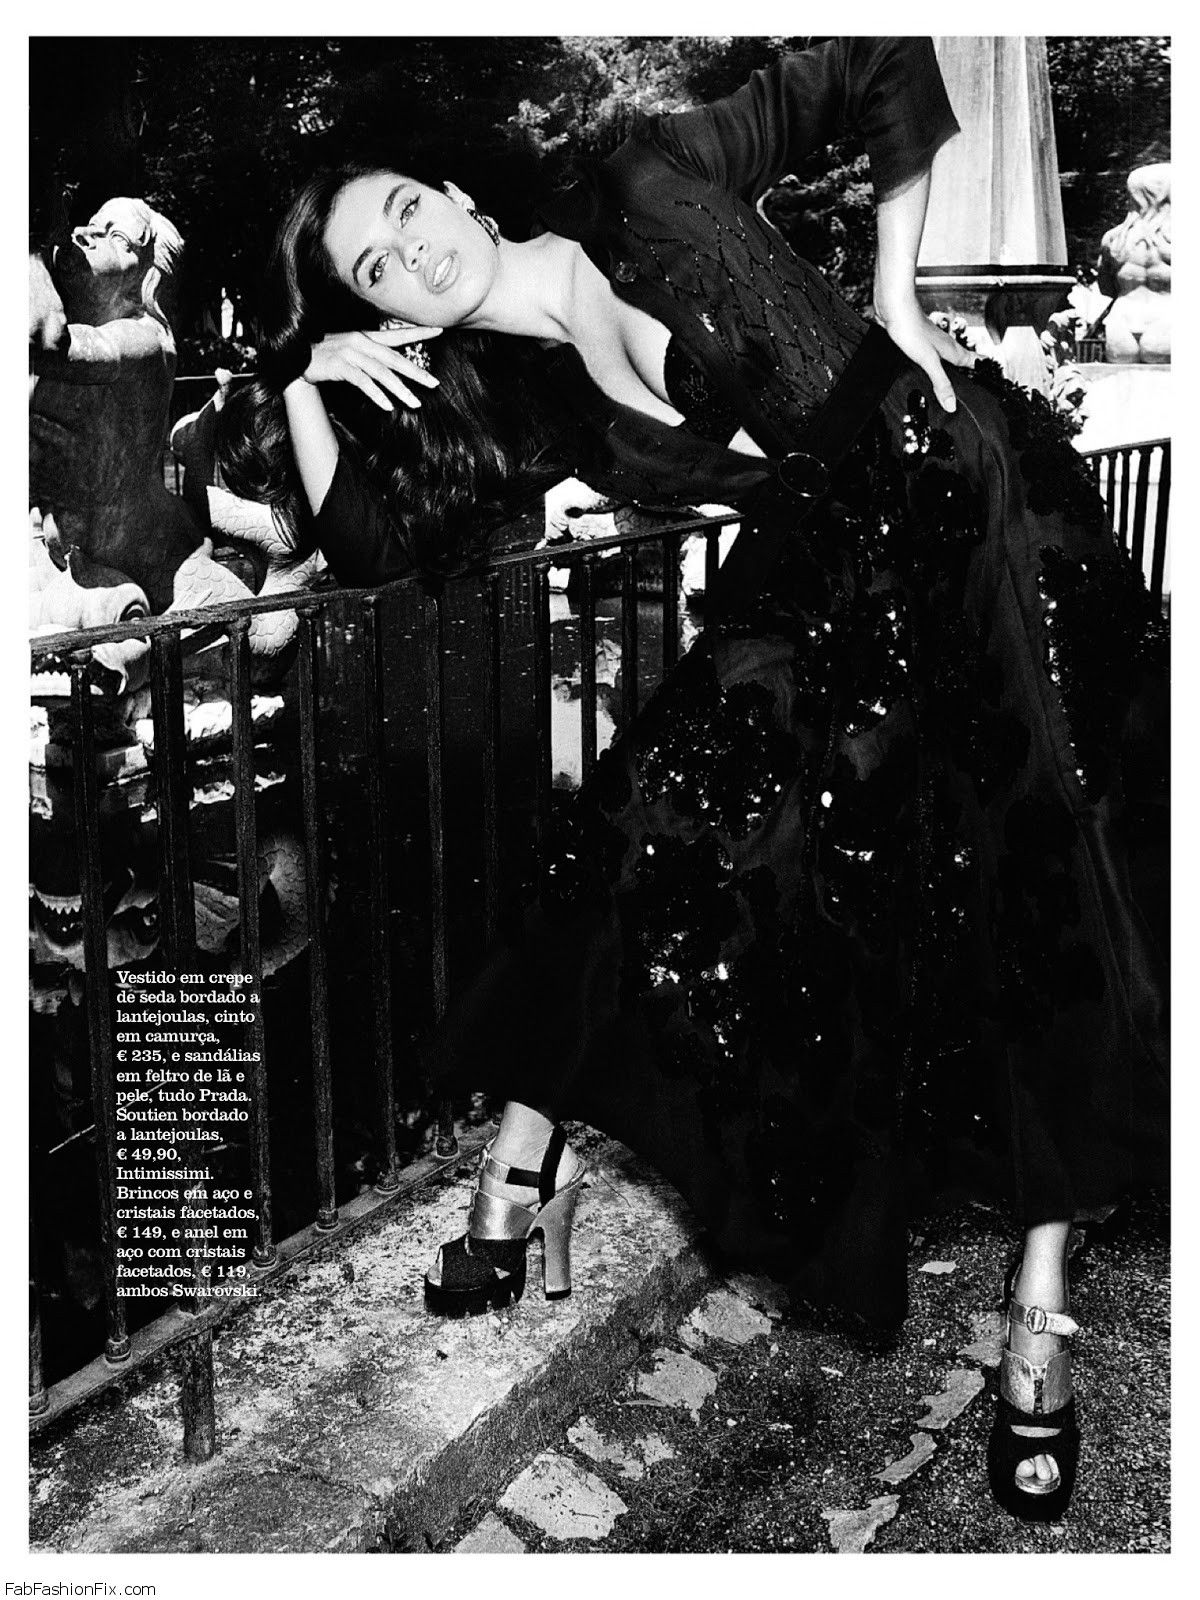 fashion_scans_remastered-sara_sampaio-elle_portugal-october_2013-scanned_by_vampirehorde-hq-9